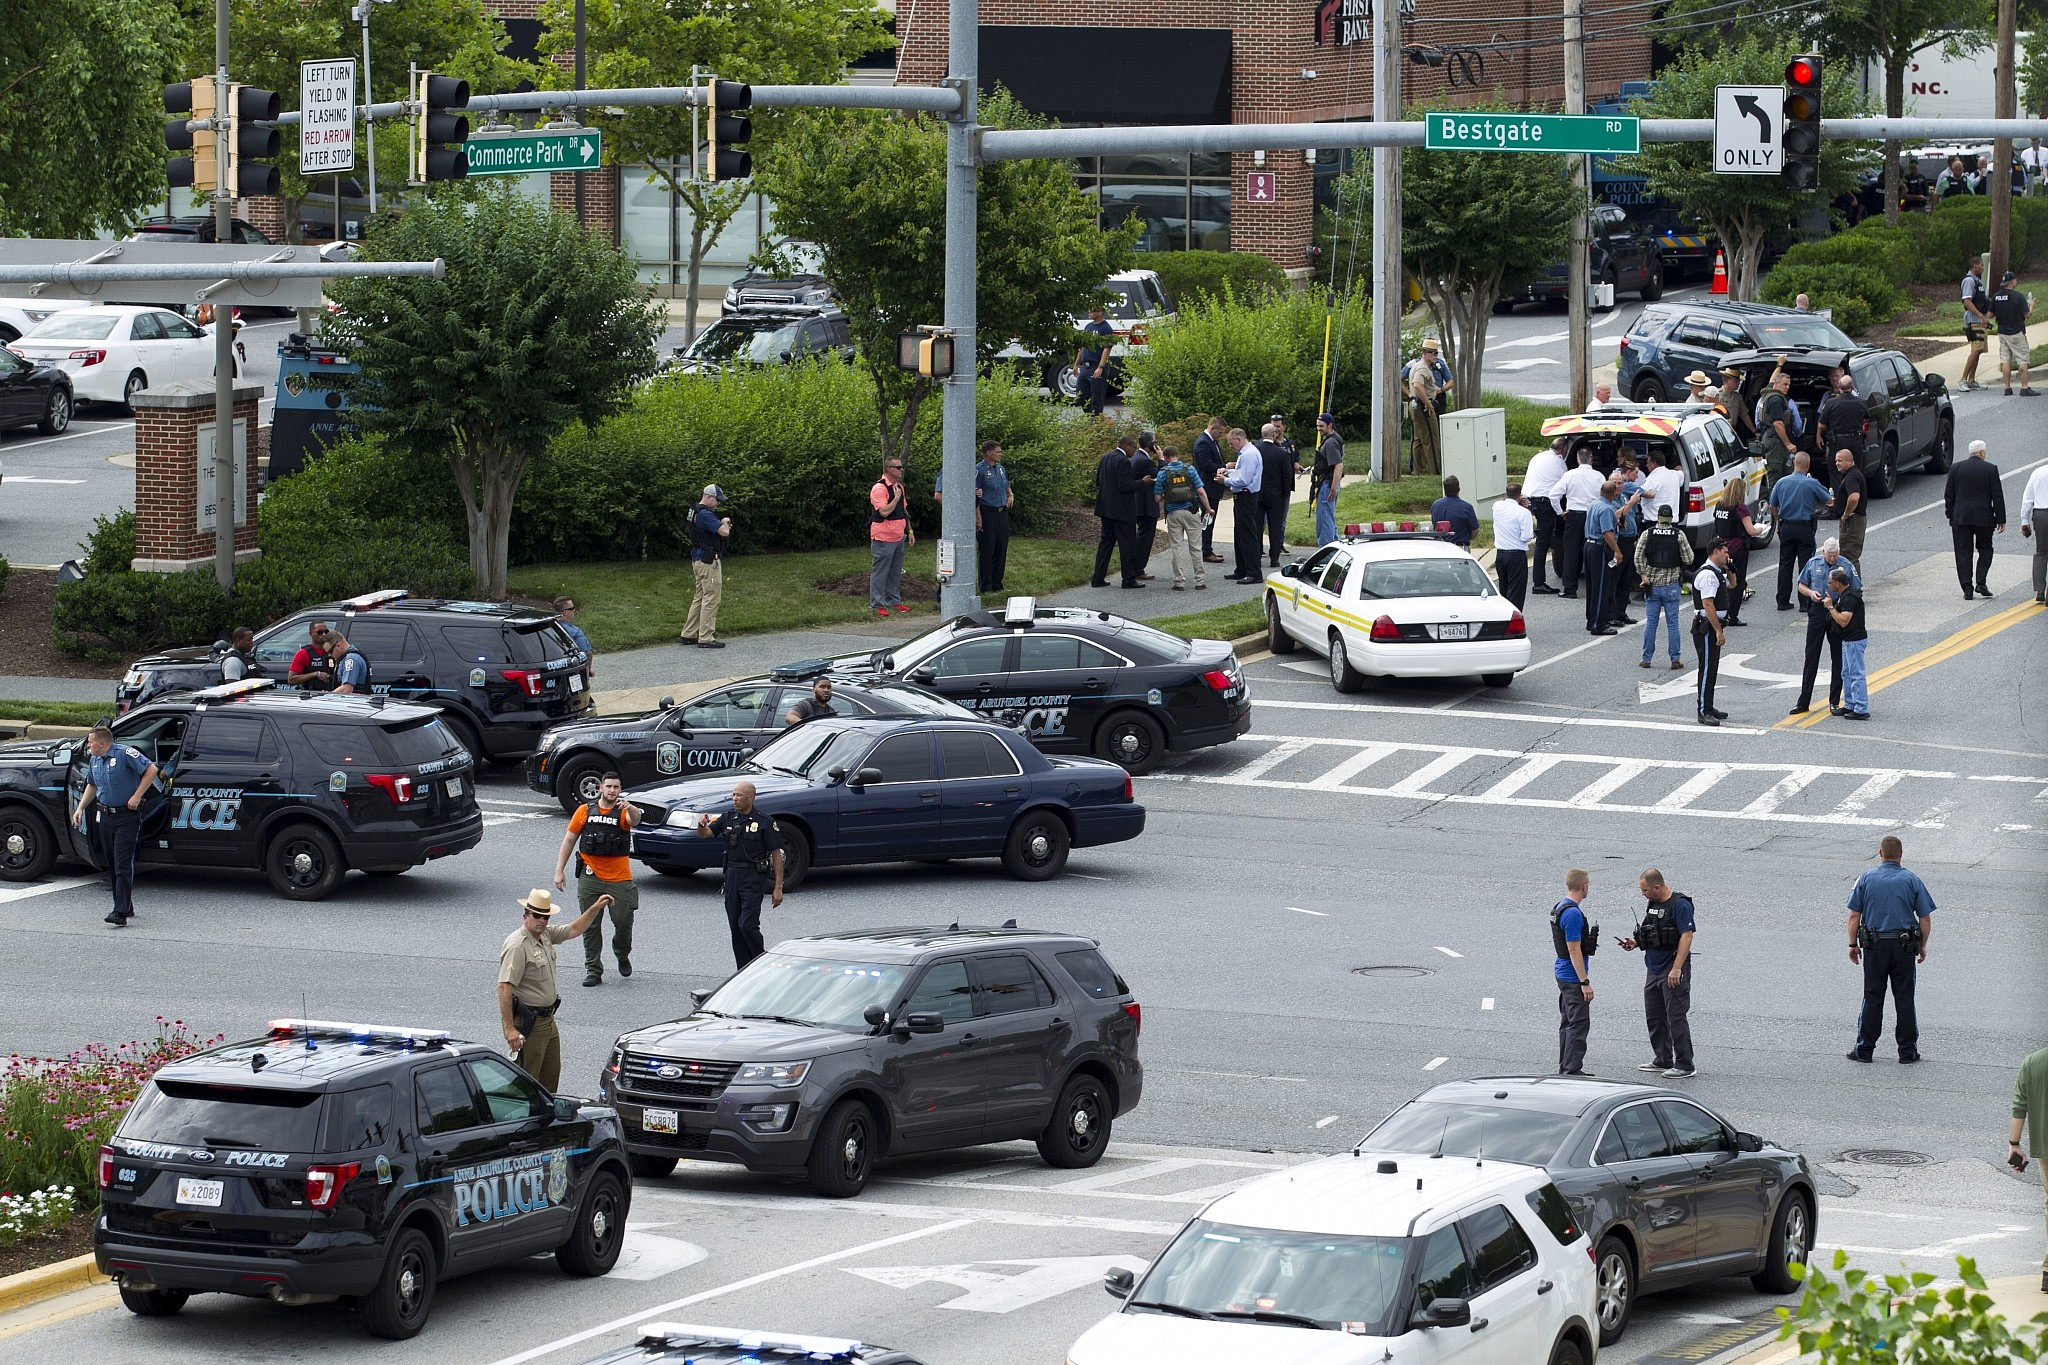 Maryland shooting: Five killed in attack on USA newspaper